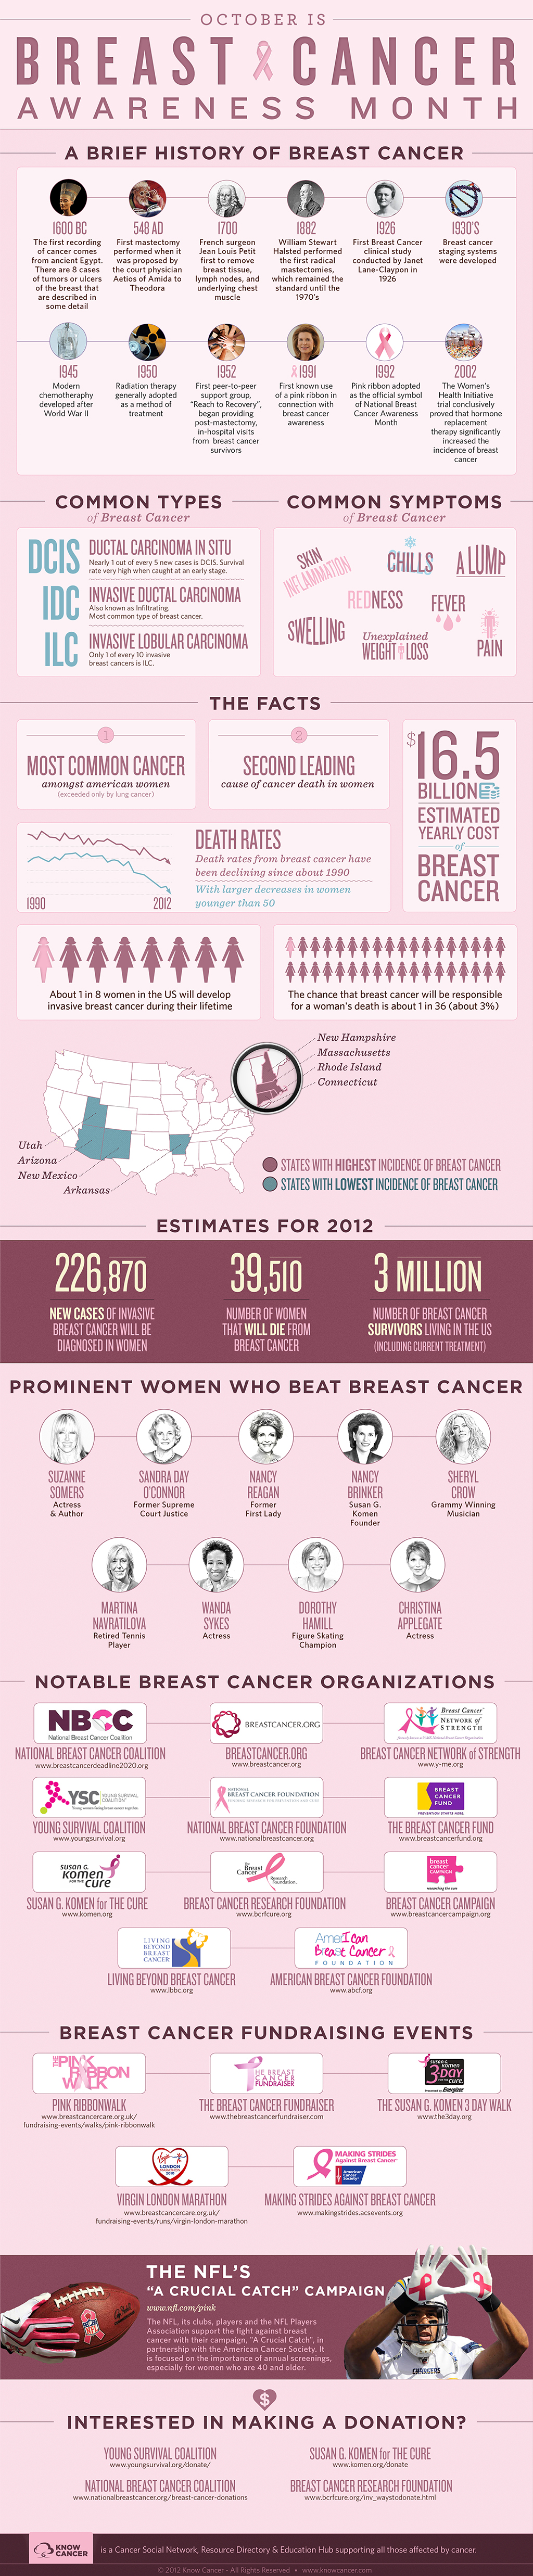 breast-cancer-awareness-month_50ad2598af660